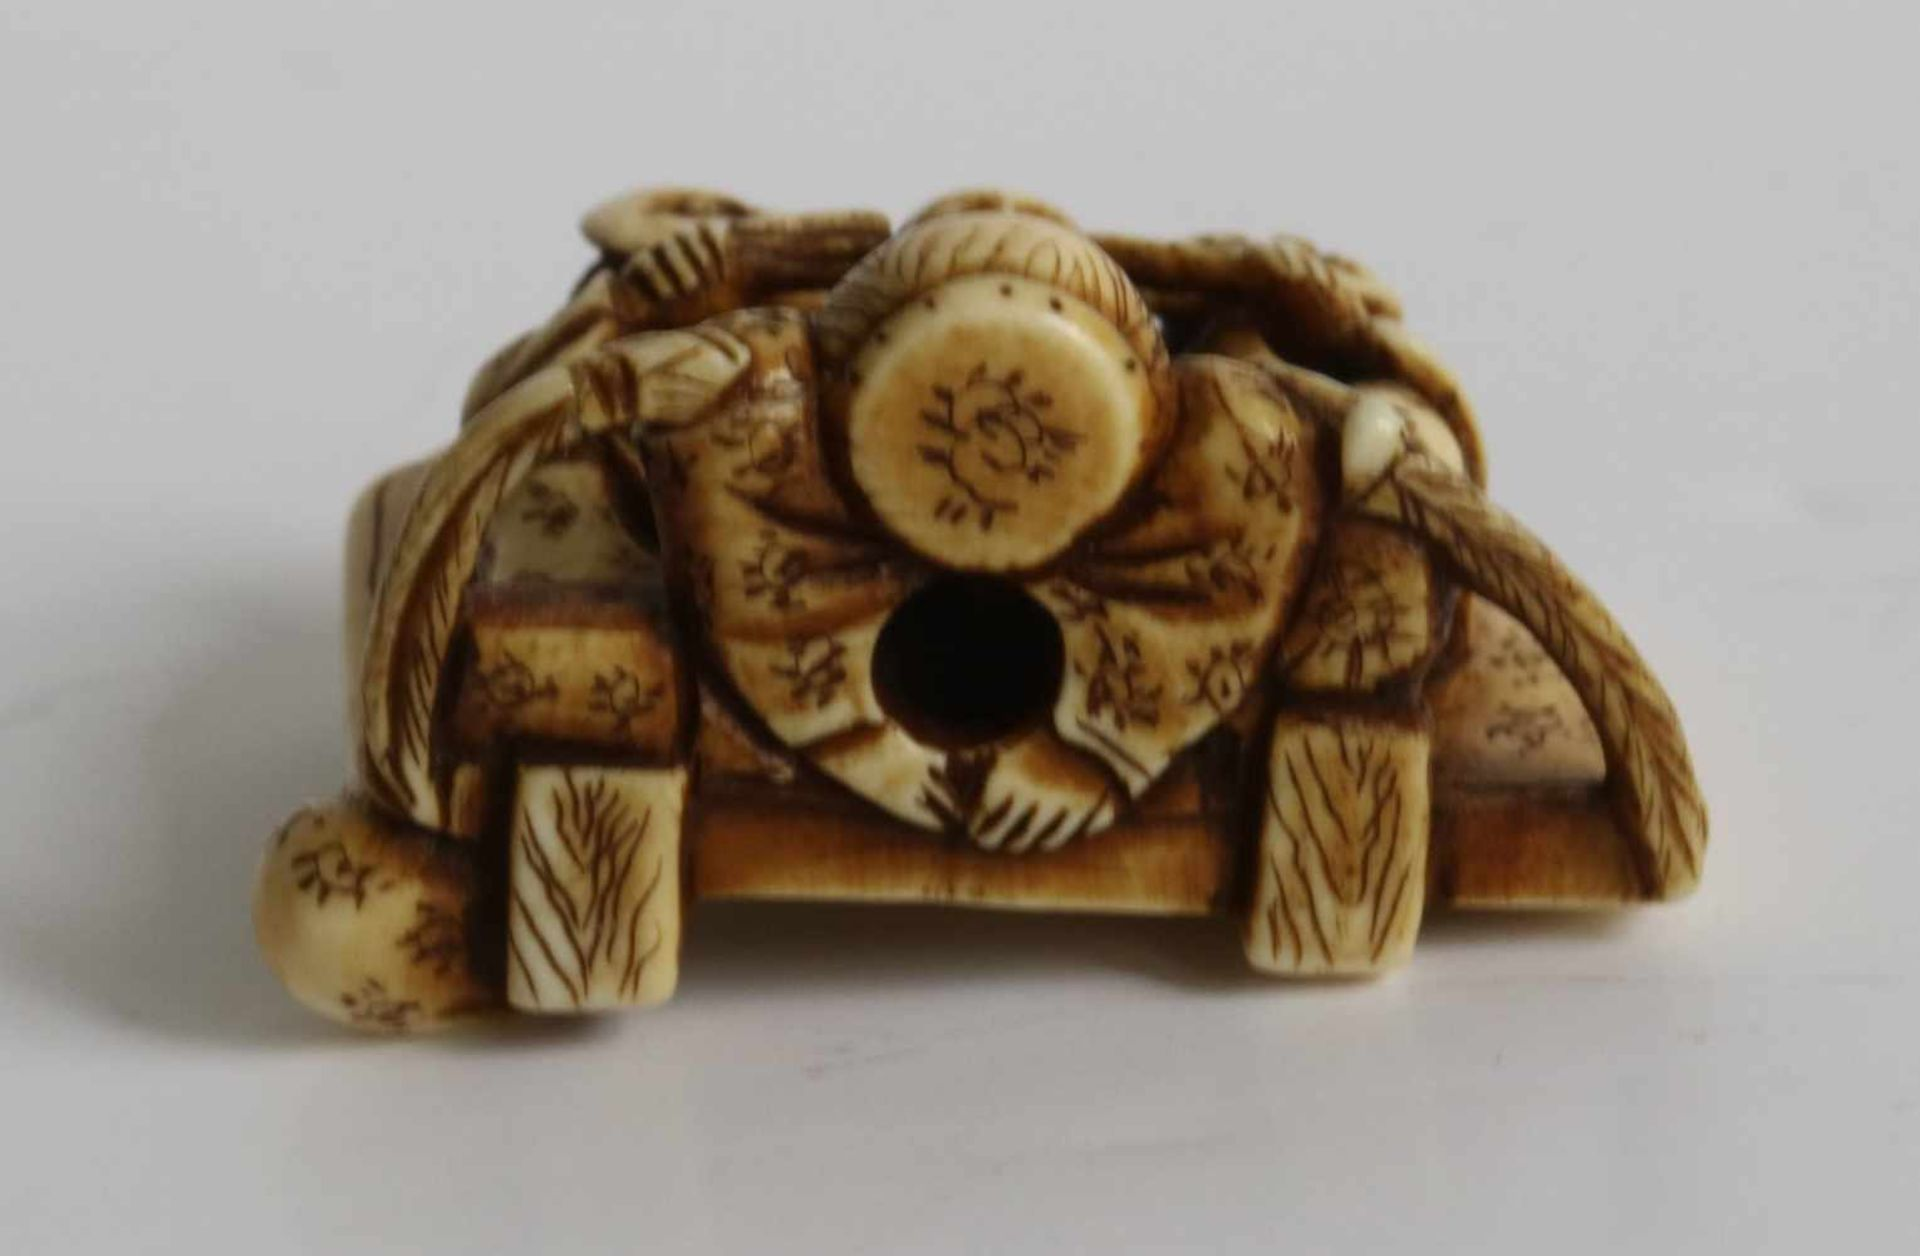 Los 471 - Netsuke Ivory depicting a Kodo drummer and 2 masked figures Japan MEIJI period H 3,8 cm private